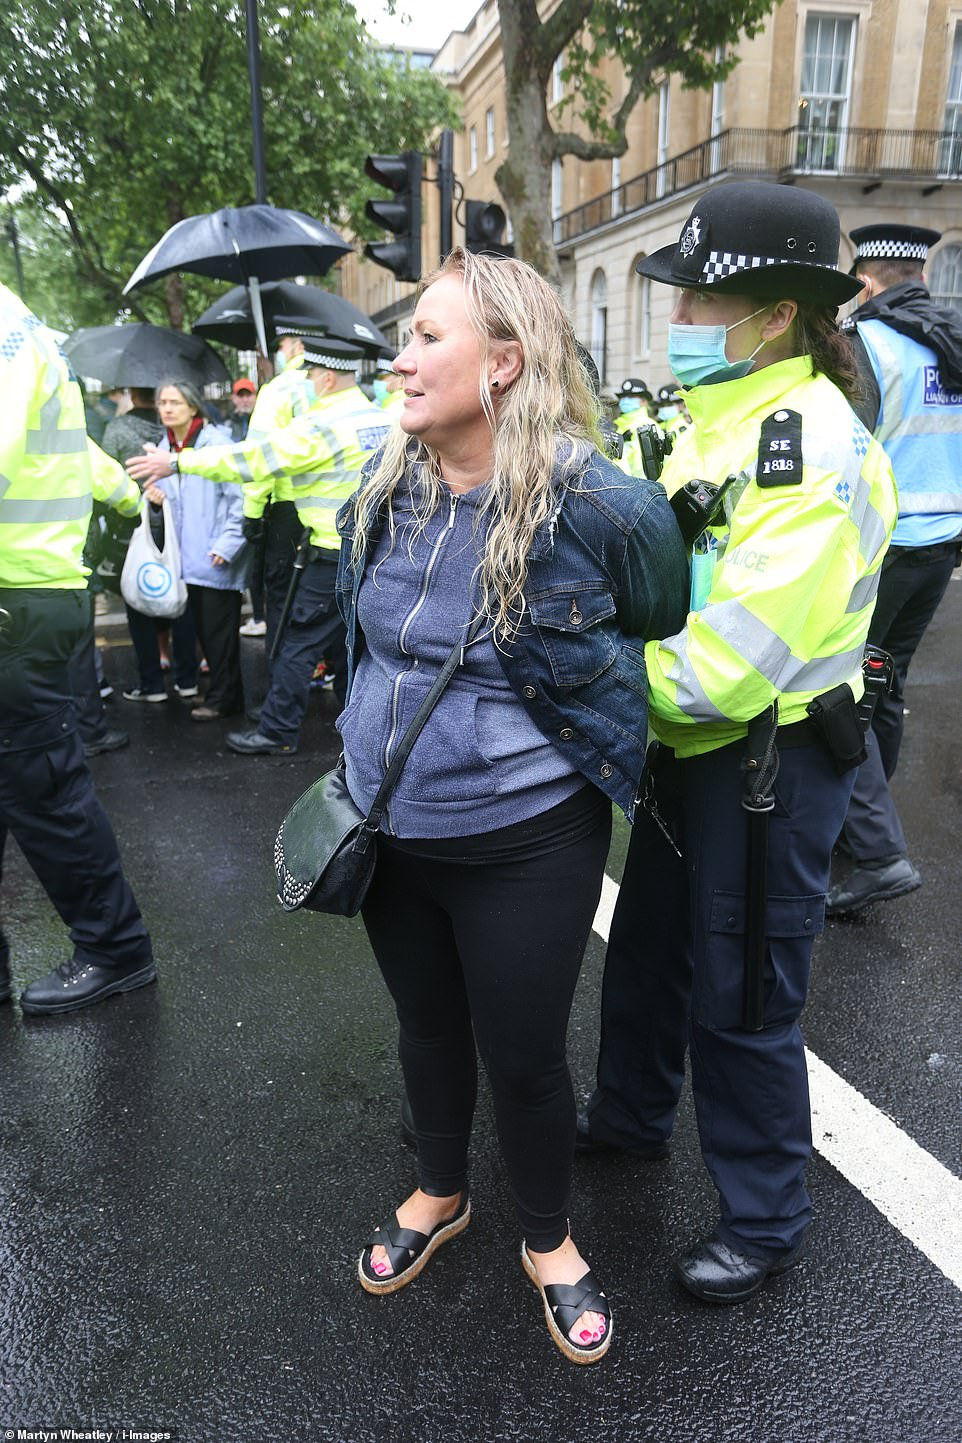 Eight arrests were made onBridge Street, Westminster, where a crowd blocked a road. A woman is seen being detained by a police officer